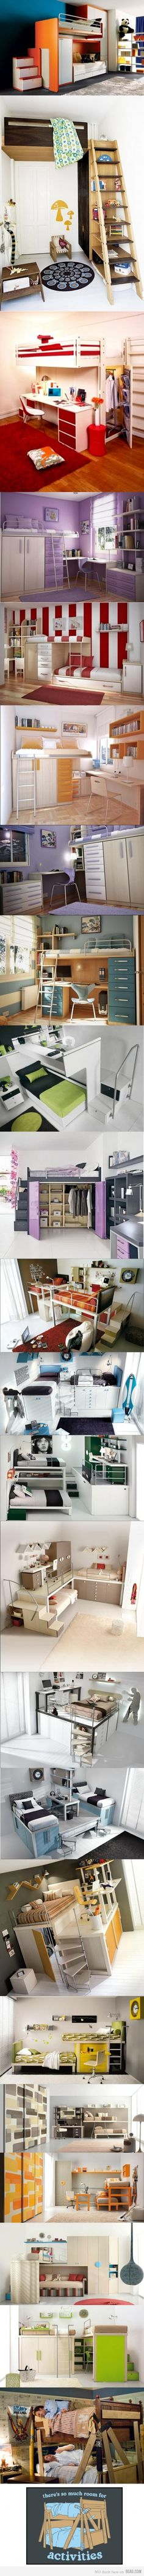 thats what i want to do with my room